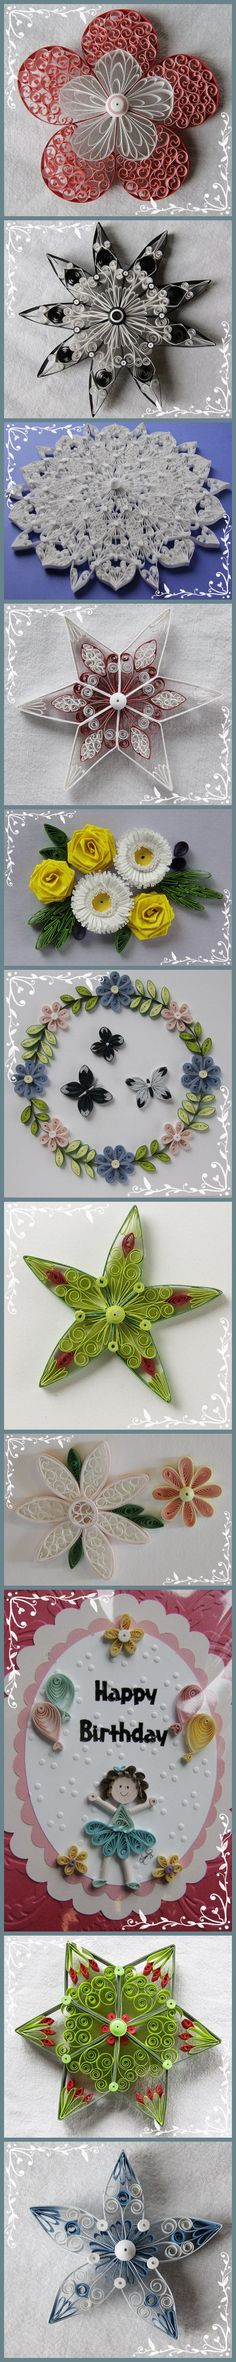 Paper art - making flowers idea